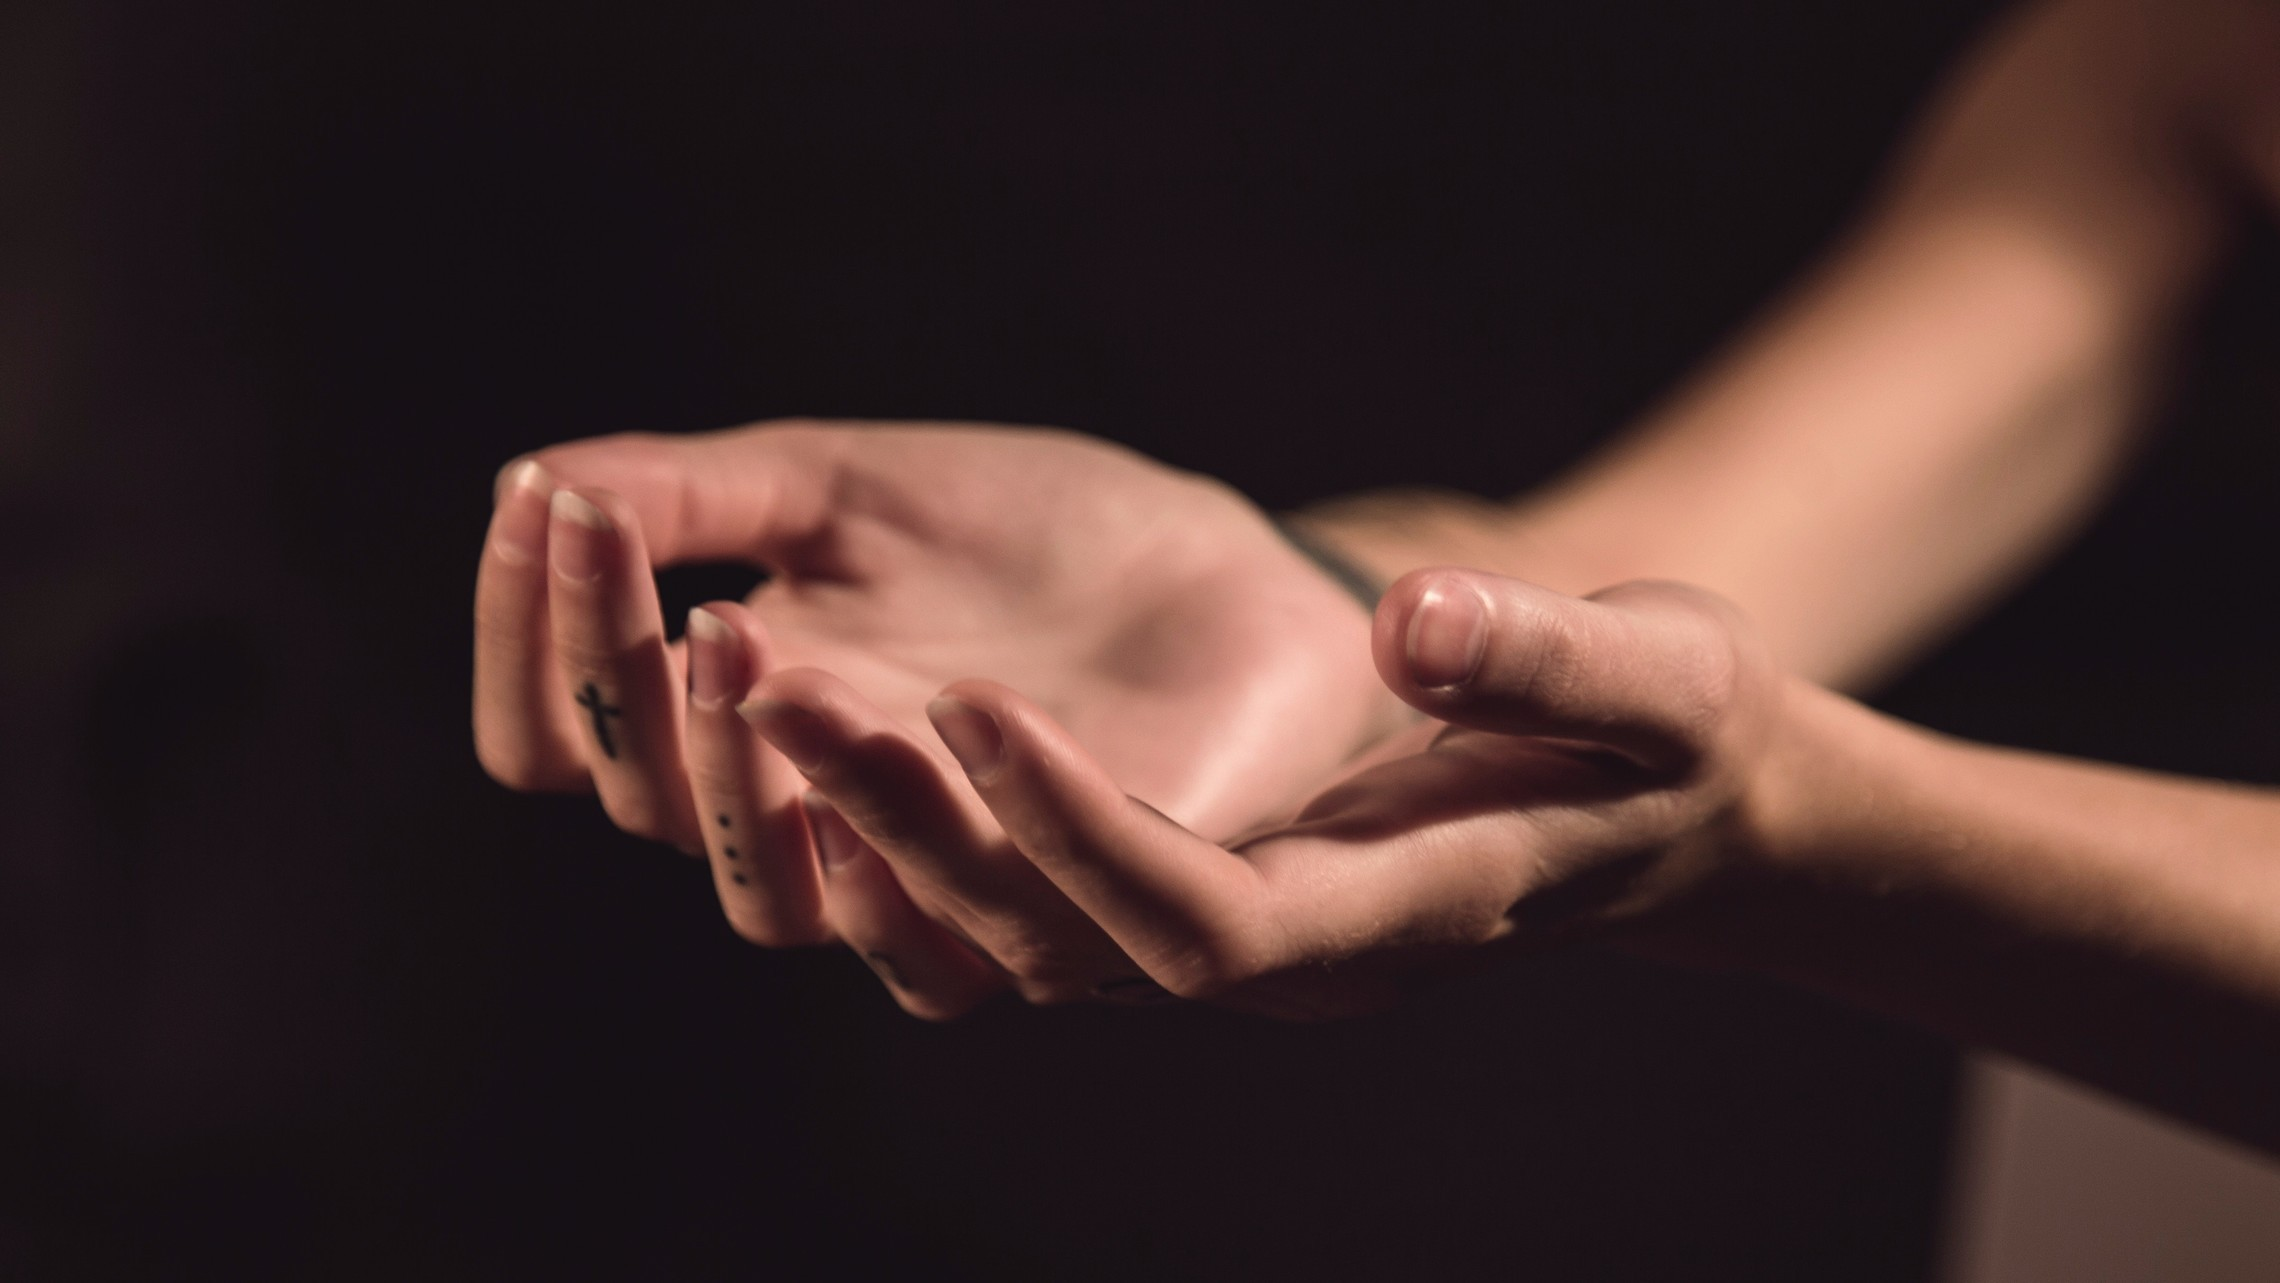 Hands of ministry